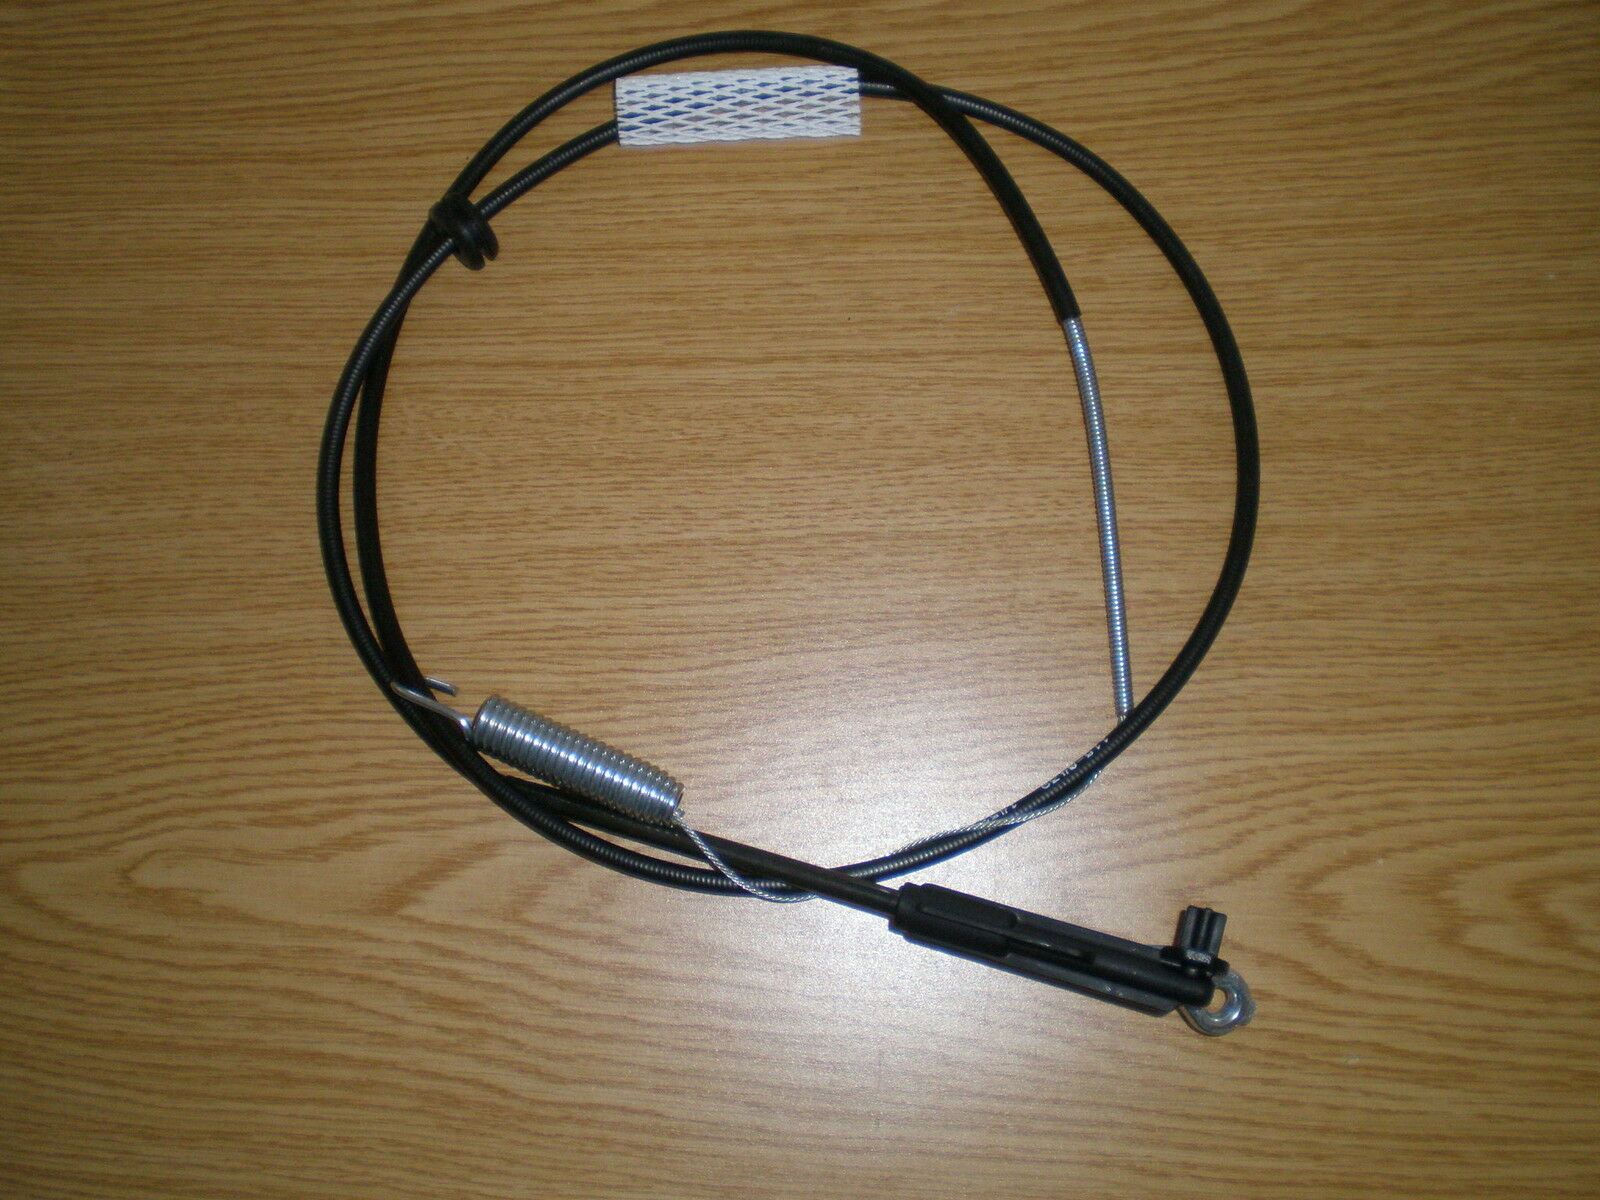 Oem Toro Personal Pace Recycler Lawnmower Blade Brake Cable 115 8439 1 Of See More